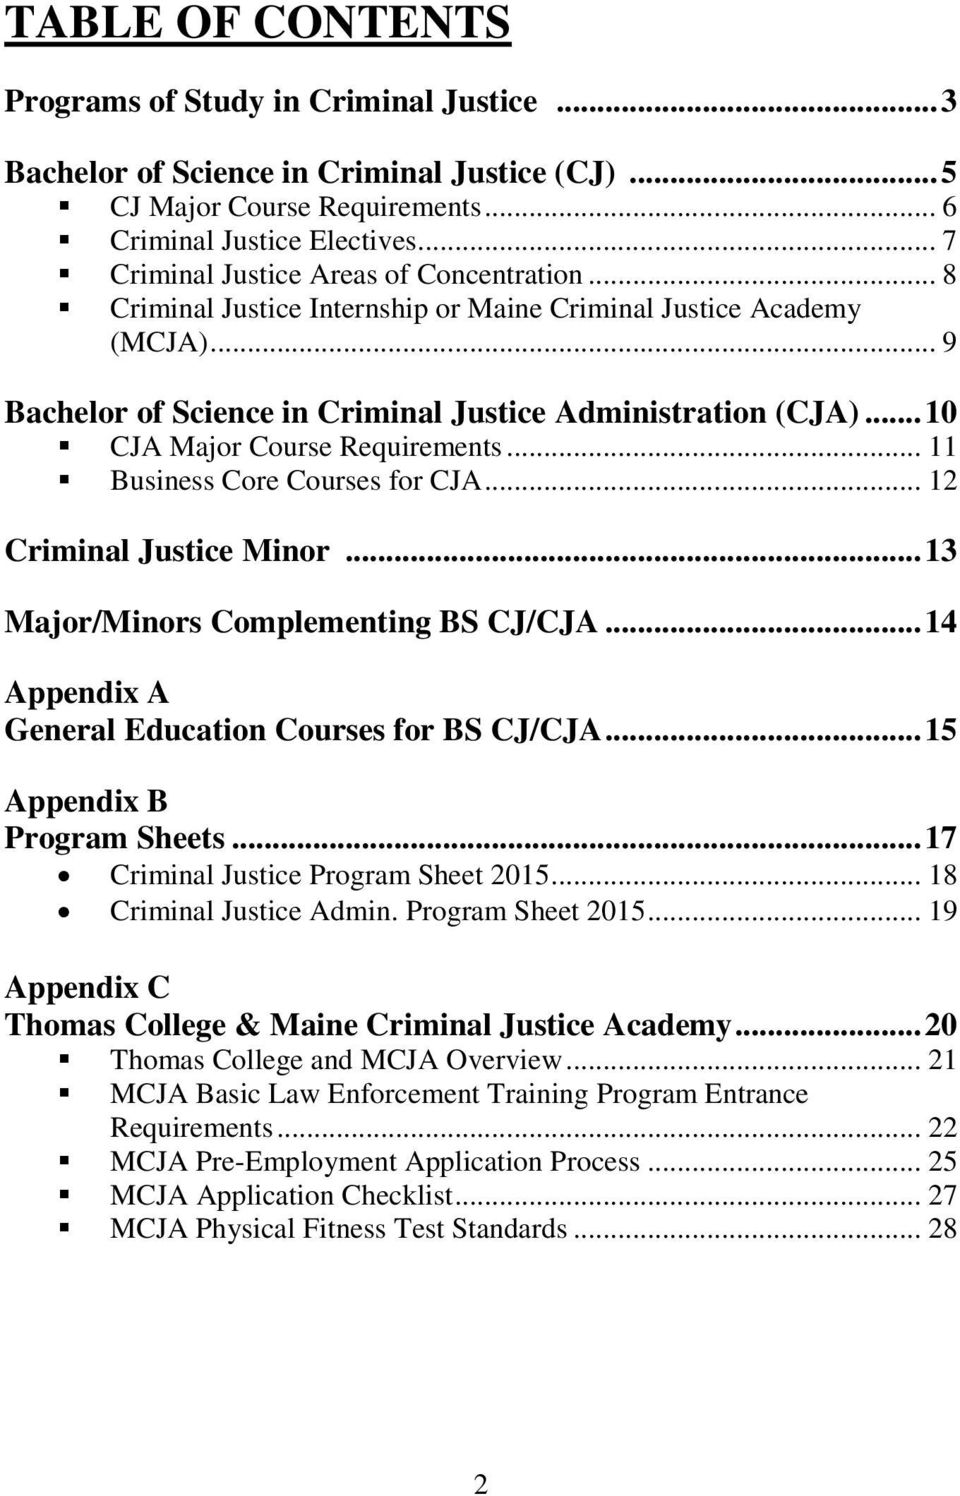 .. 10 CJA Major Course Requirements... 11 Business Core Courses for CJA... 12 Criminal Justice Minor... 13 Major/Minors Complementing BS CJ/CJA... 14 Appendix A General Education Courses for BS CJ/CJA.